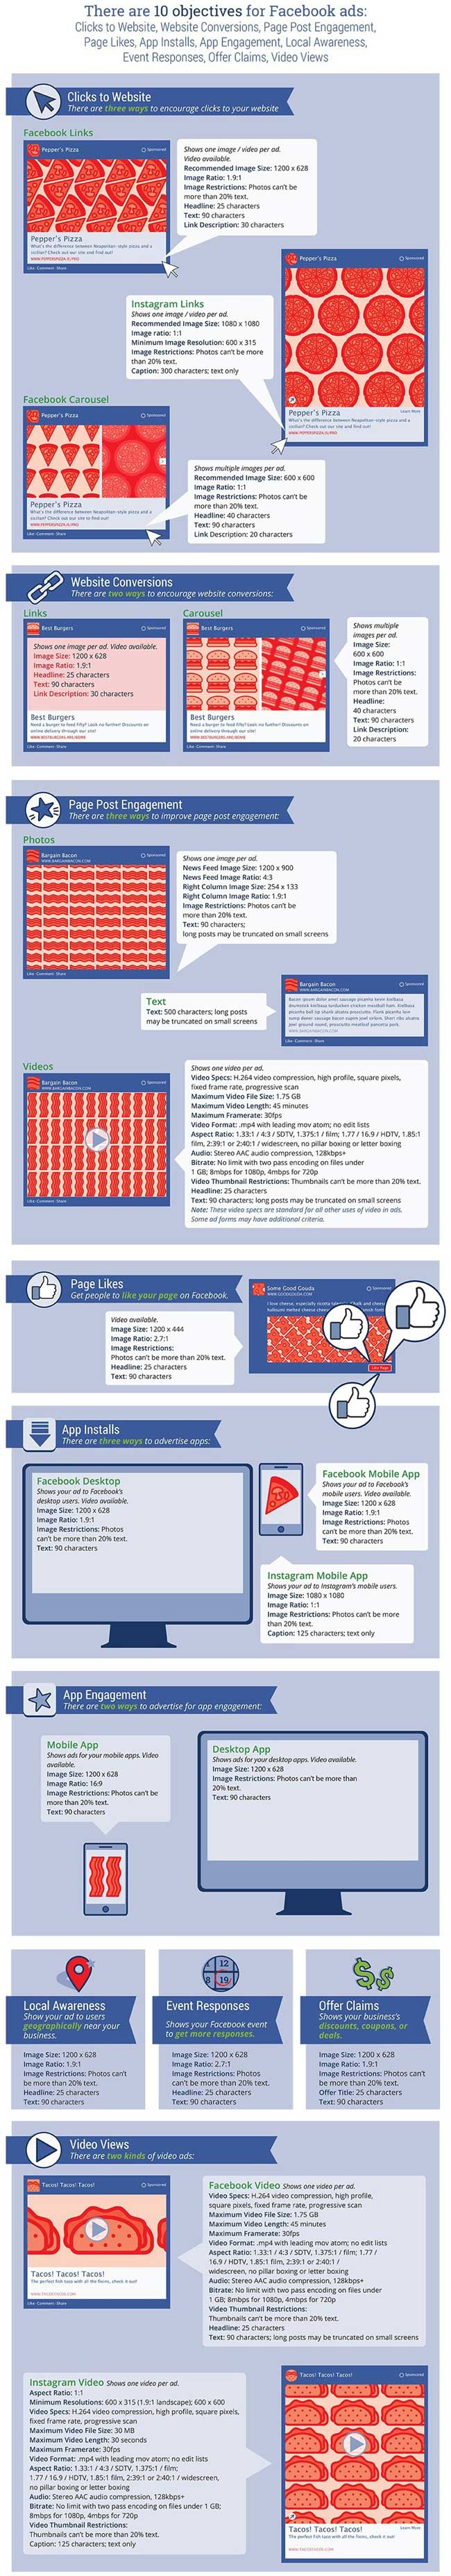 Facebook ad specifications - objectives